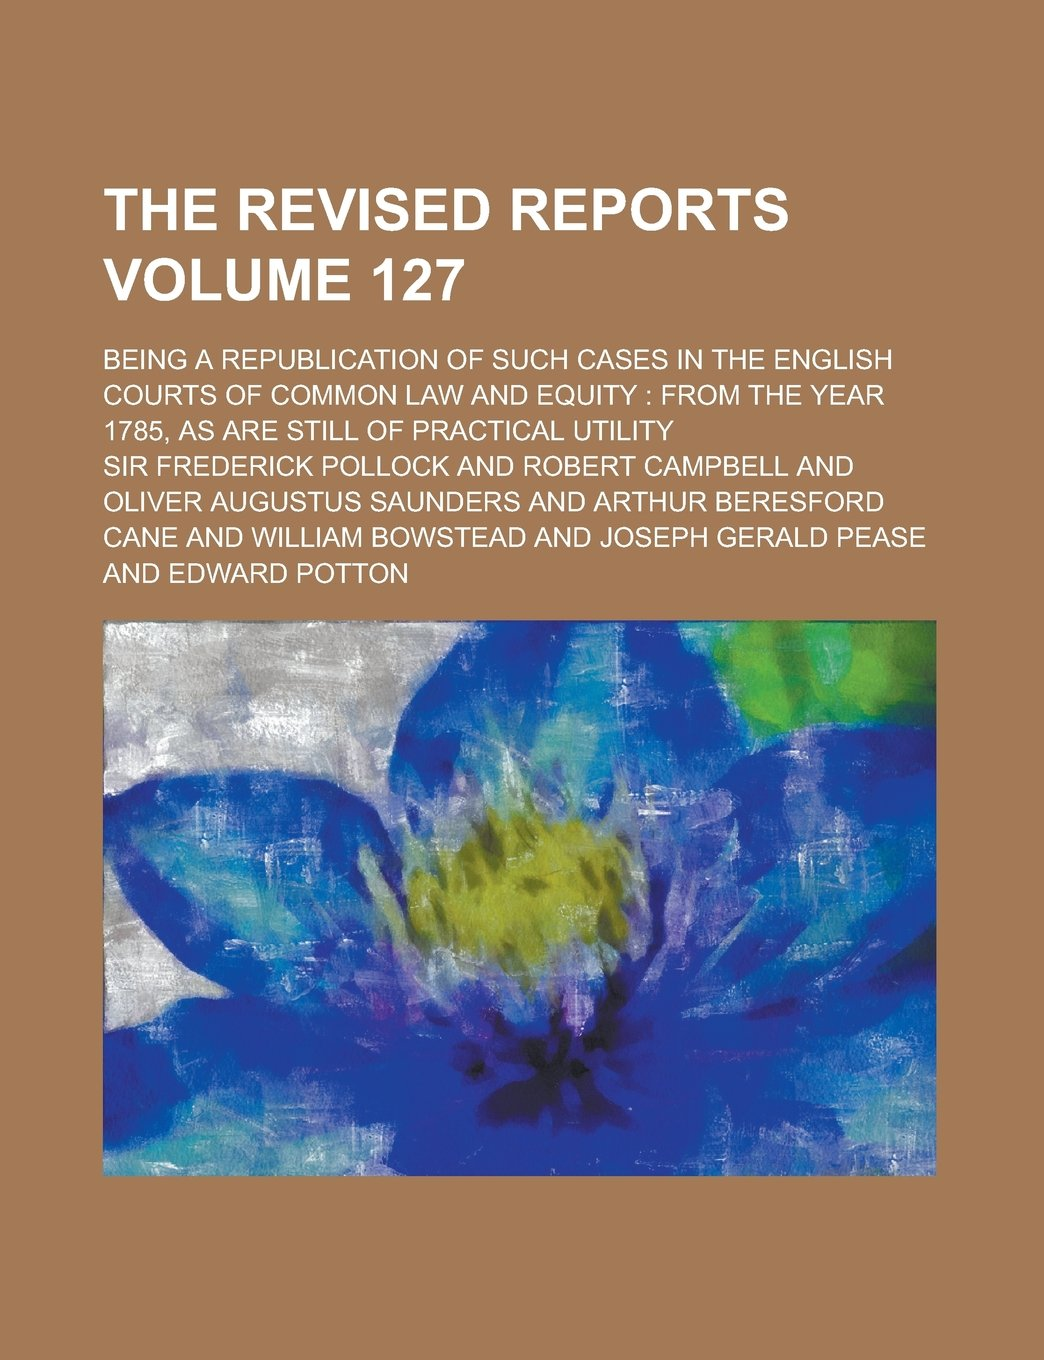 Read Online The Revised Reports; Being a Republication of Such Cases in the English Courts of Common Law and Equity: from the Year 1785, as are Still of Practical Utility Volume 127 pdf